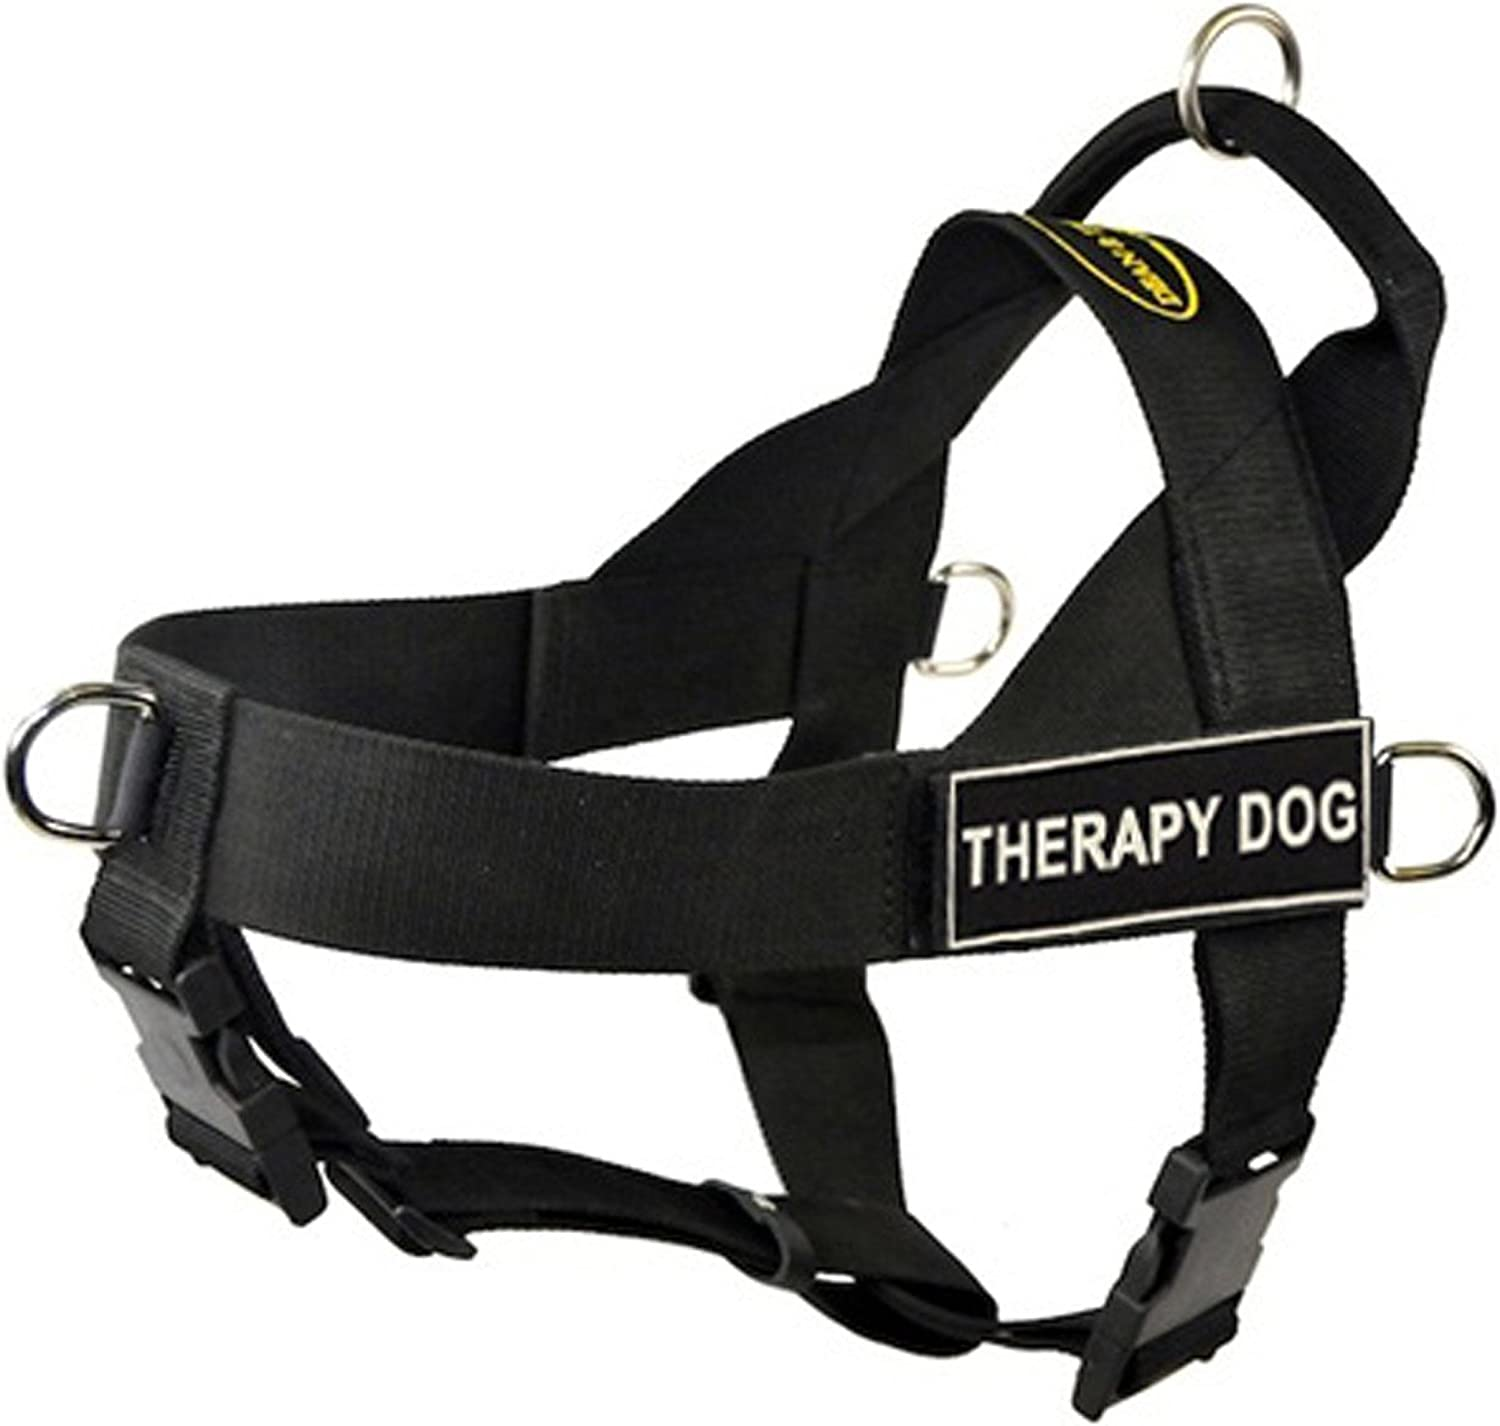 DT Universal No Pull Dog Harness, Therapy Dog, Black, Medium  Fits Girth Size  66cm to 81cm